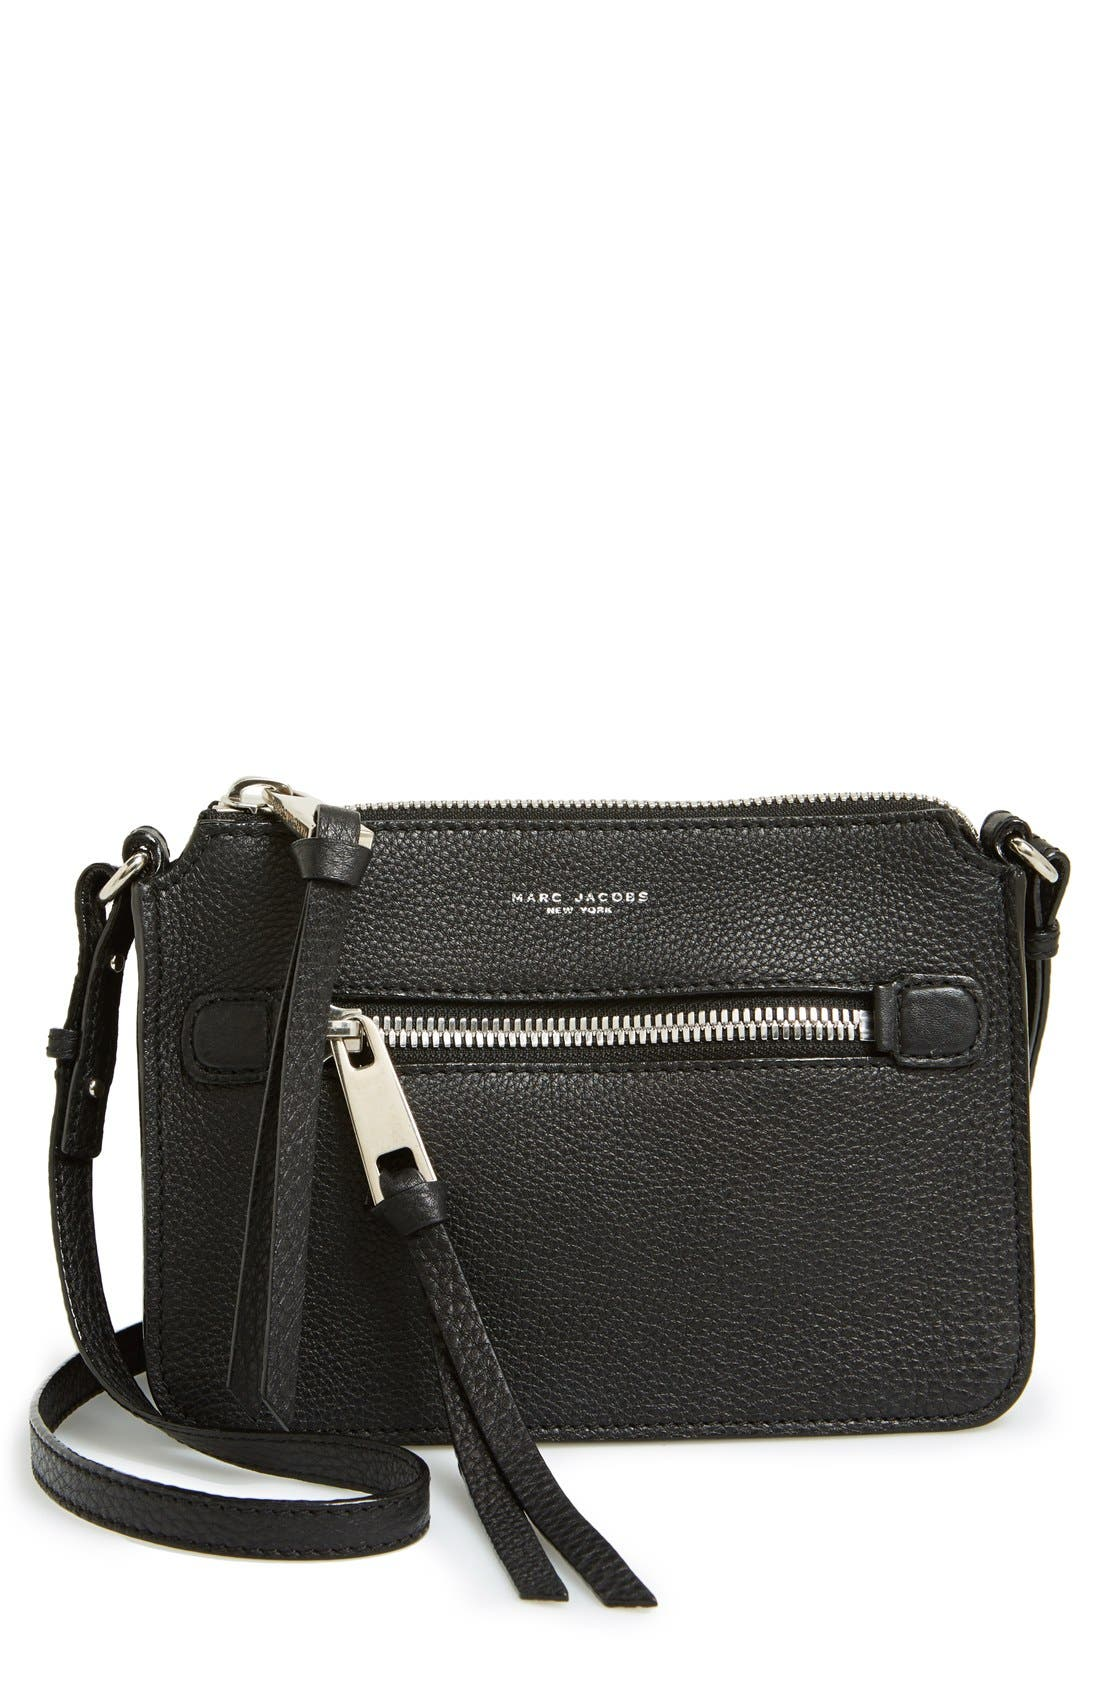 Alternate Image 1 Selected - MARC JACOBS 'Big Apple' Pouchette Crossbody Bag